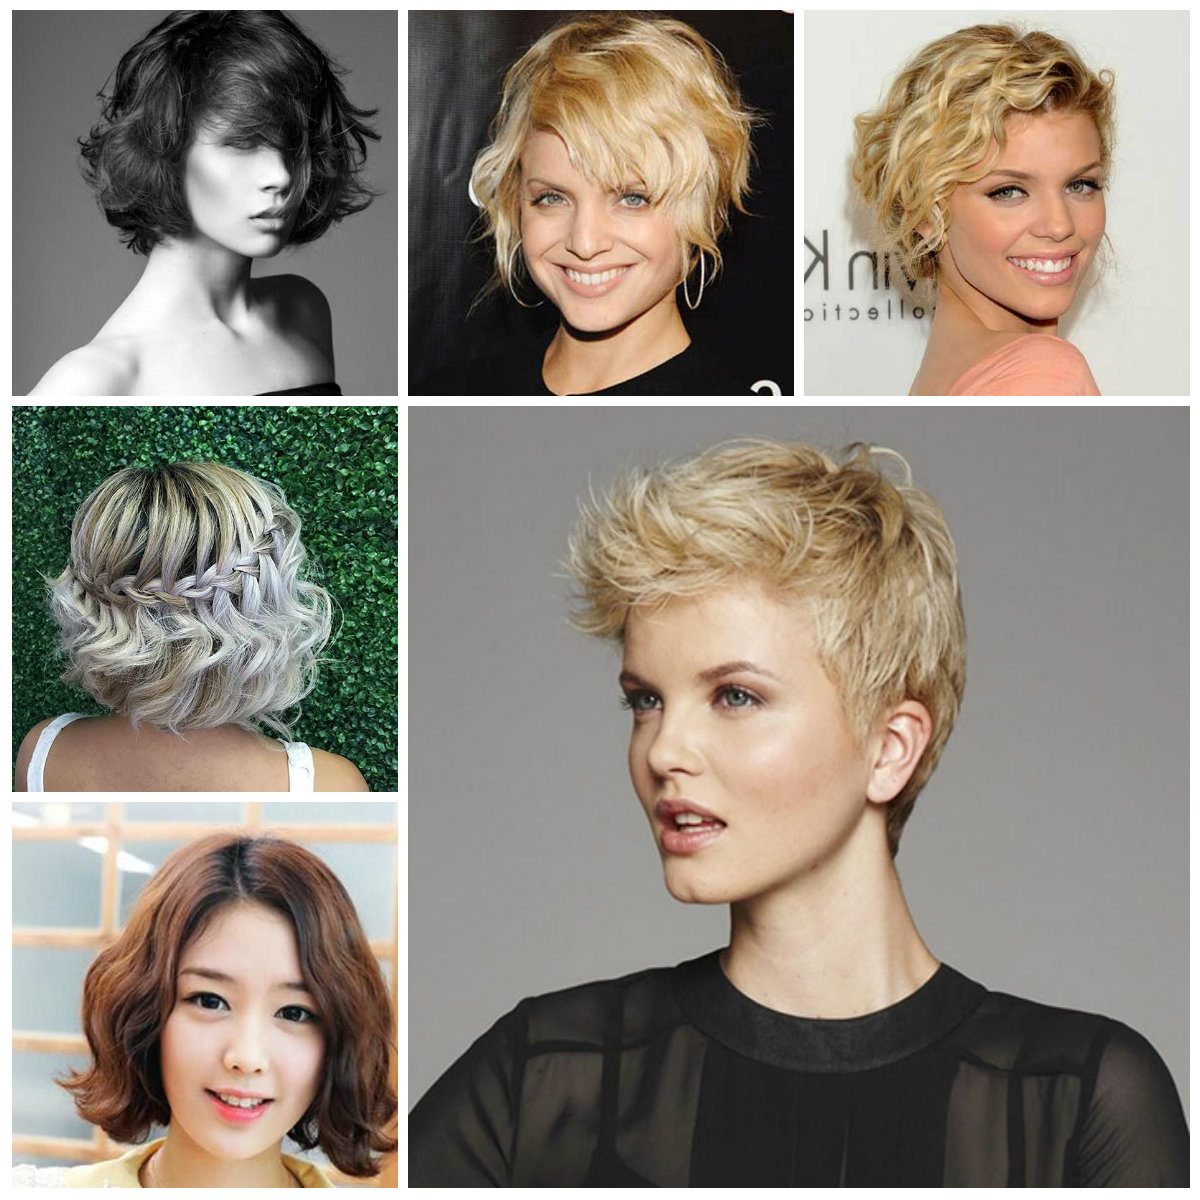 2019 Haircuts, Hairstyles And Hair Colors With Regard To Latest Ravishing Raven Waves Hairstyles (Gallery 13 of 20)